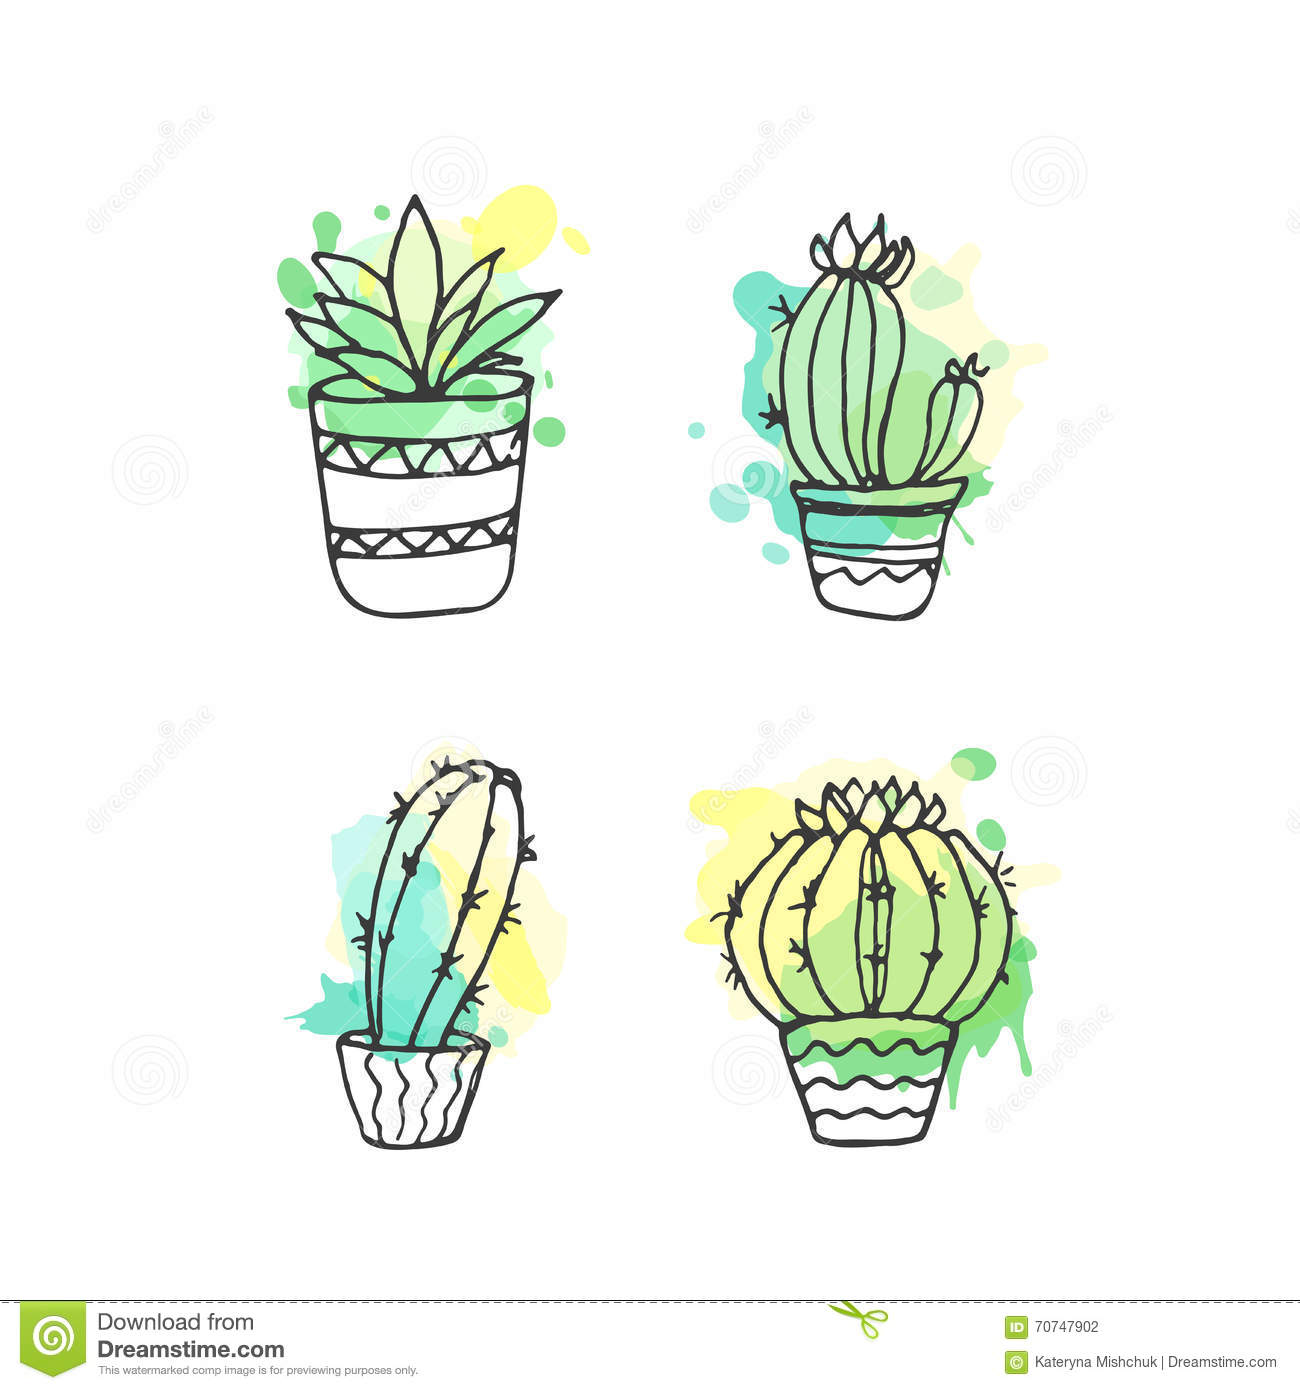 Vector Cactus Hand Drawn Set With Paint Splashes. Cacti And In Door Plants  In Pots With Colorful Splatter. Exotic Mexican Flora Design.